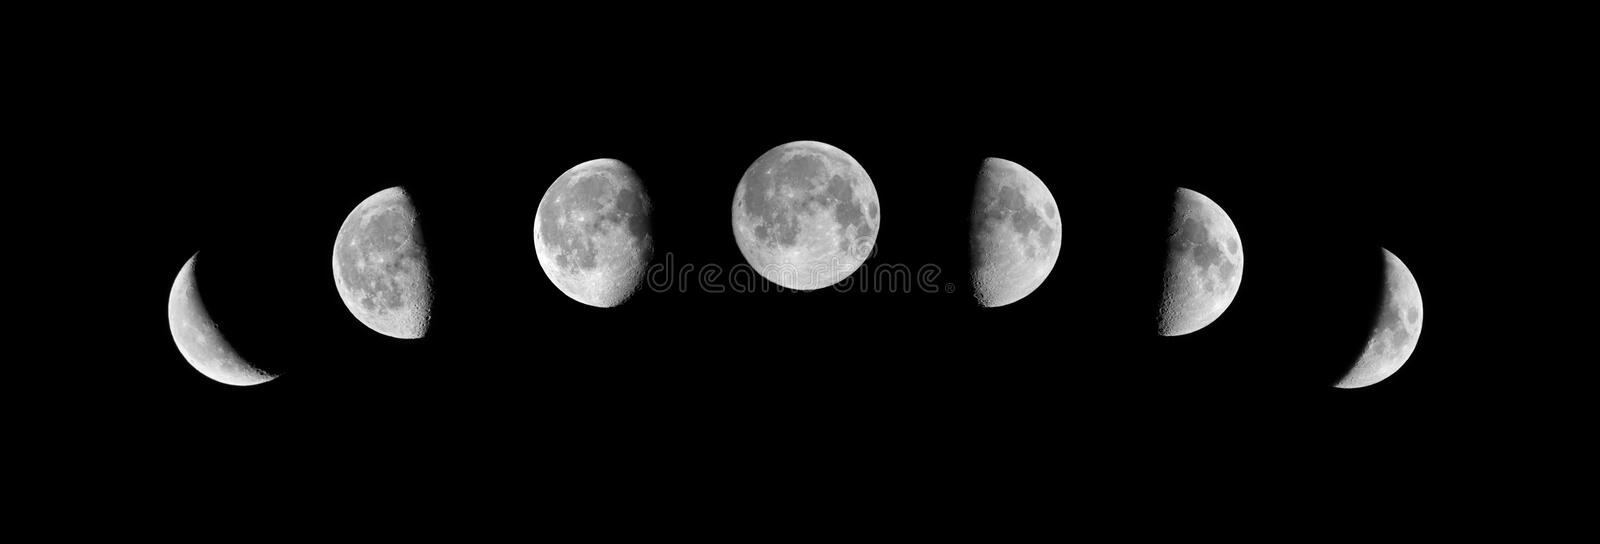 Phases of the moon royalty free stock photos